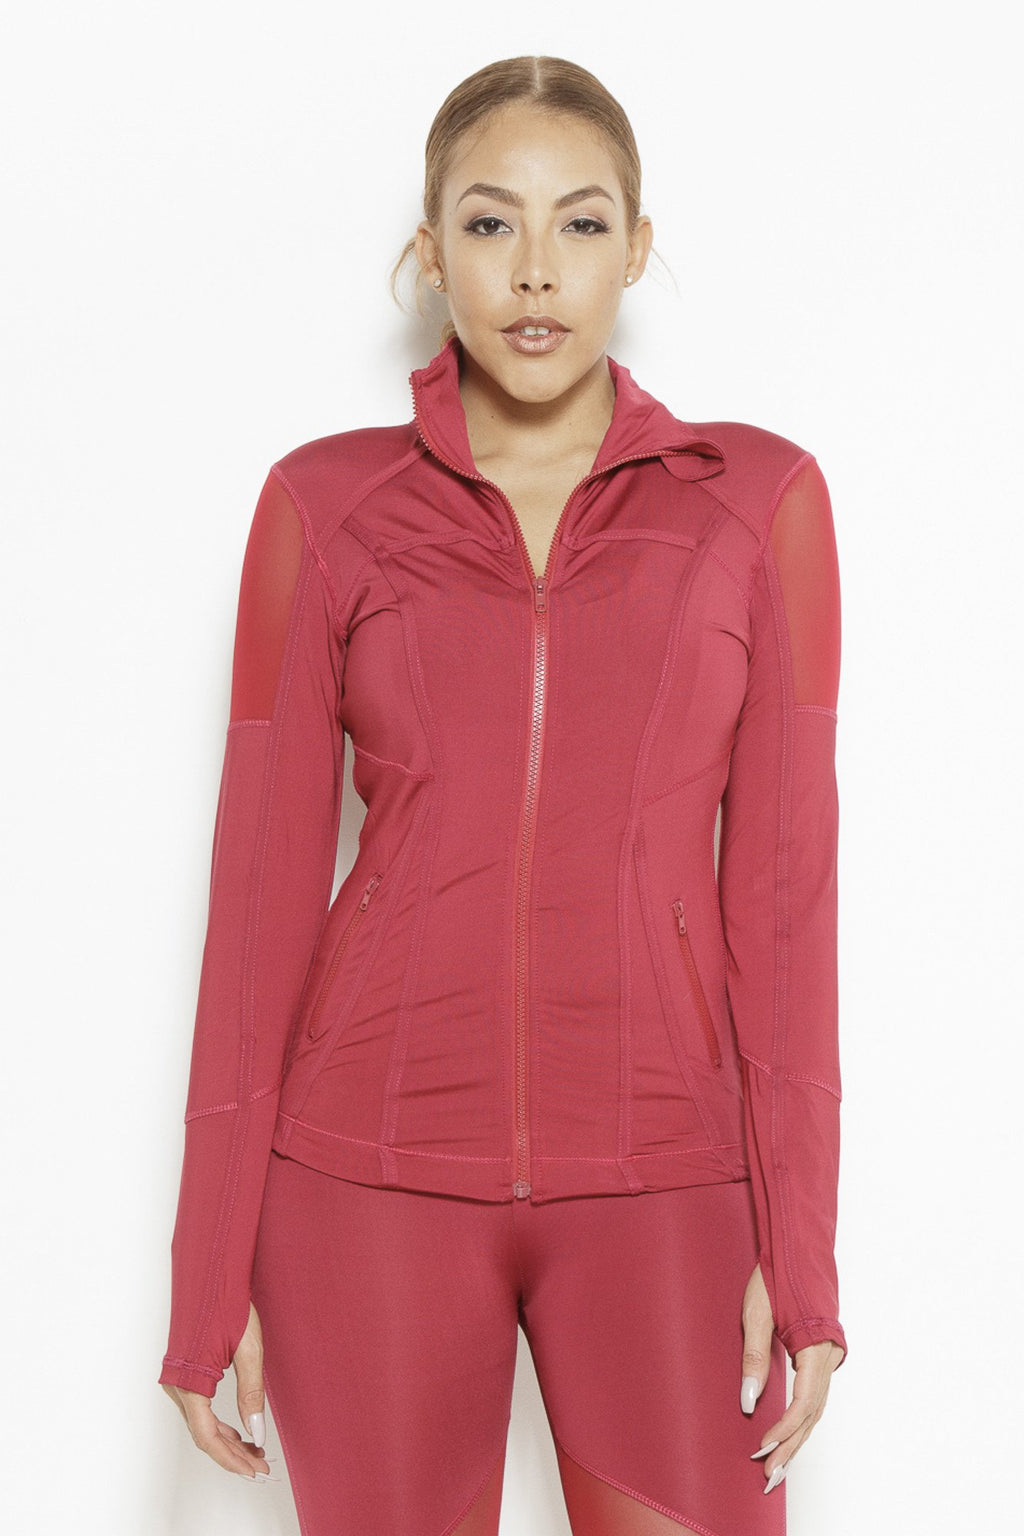 fair-shade - Vibes of Color Sports Jacket- Bright Red - Clothing